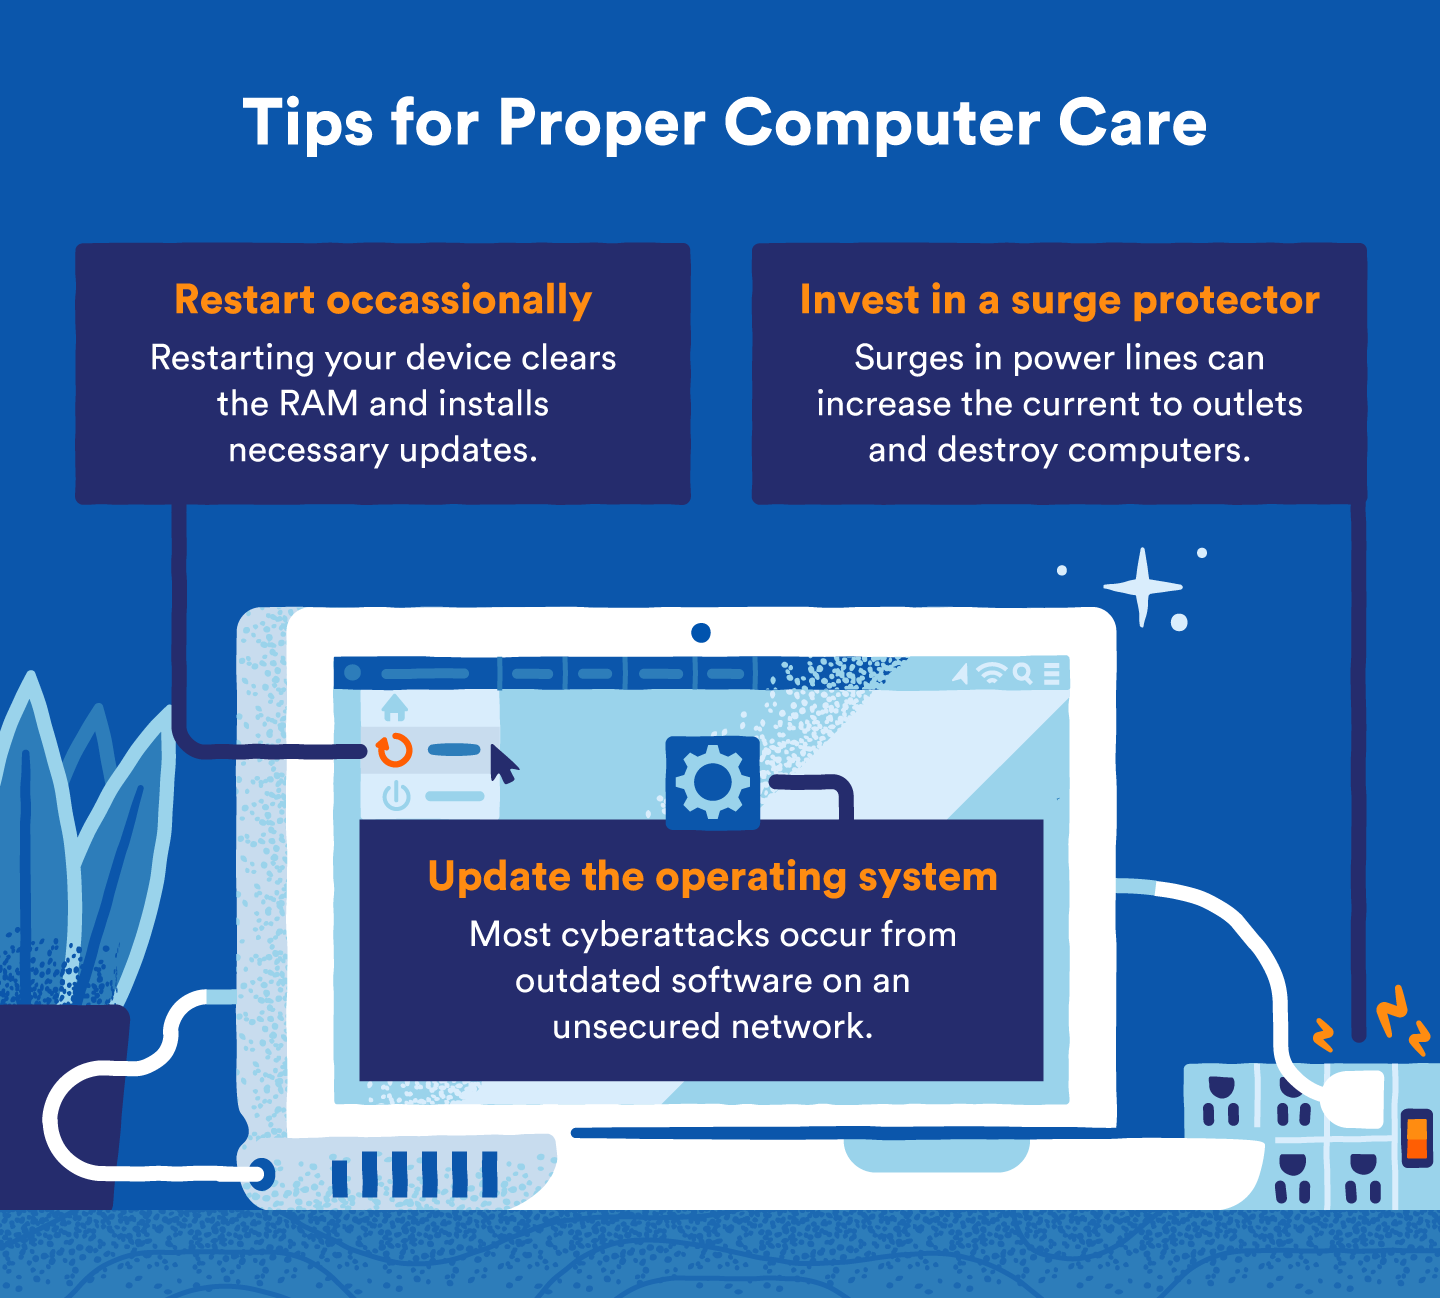 tips-for-proper-computer-care